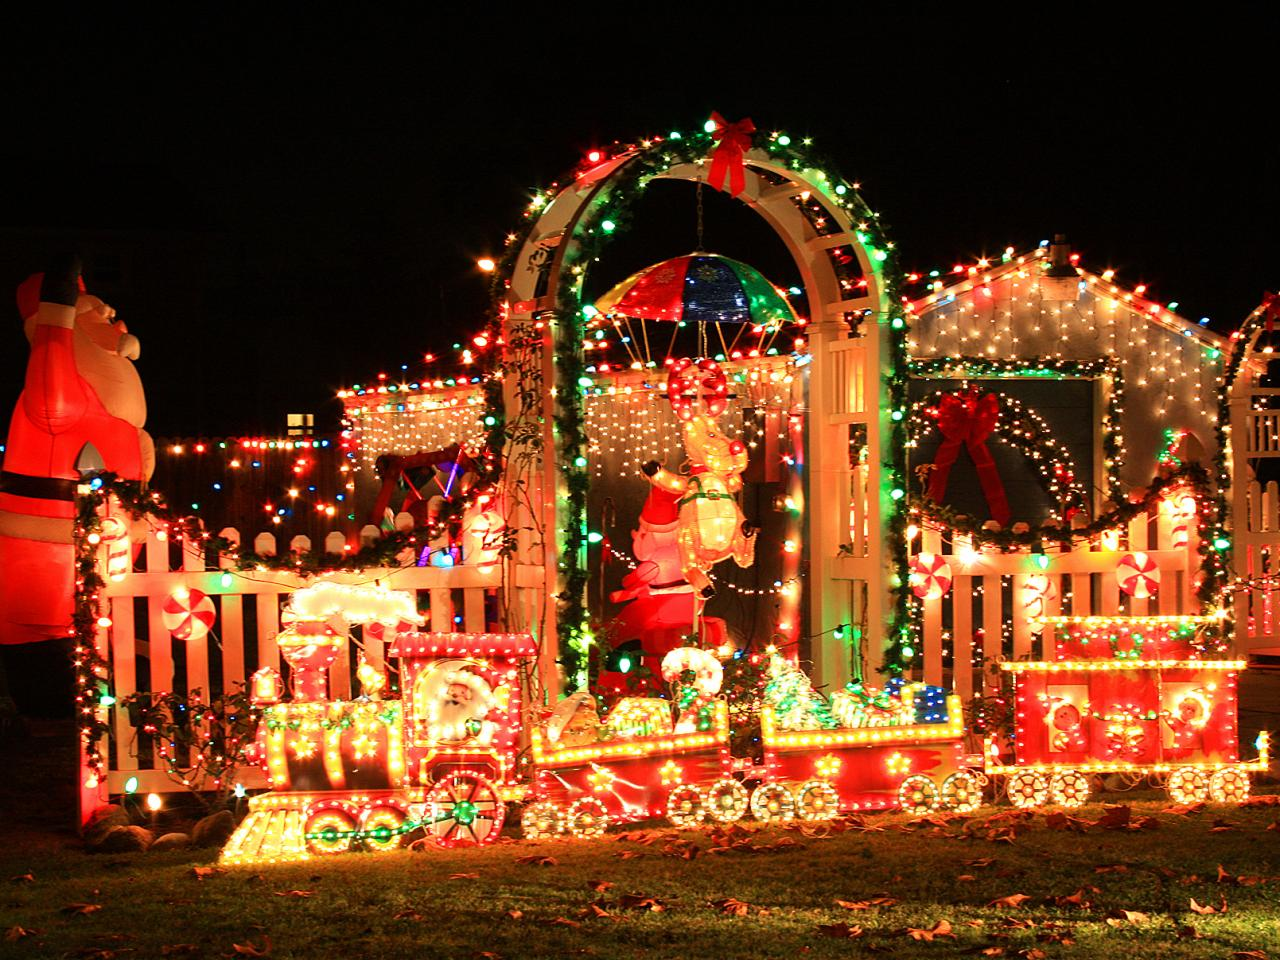 classic holidays - Holiday Christmas Lights